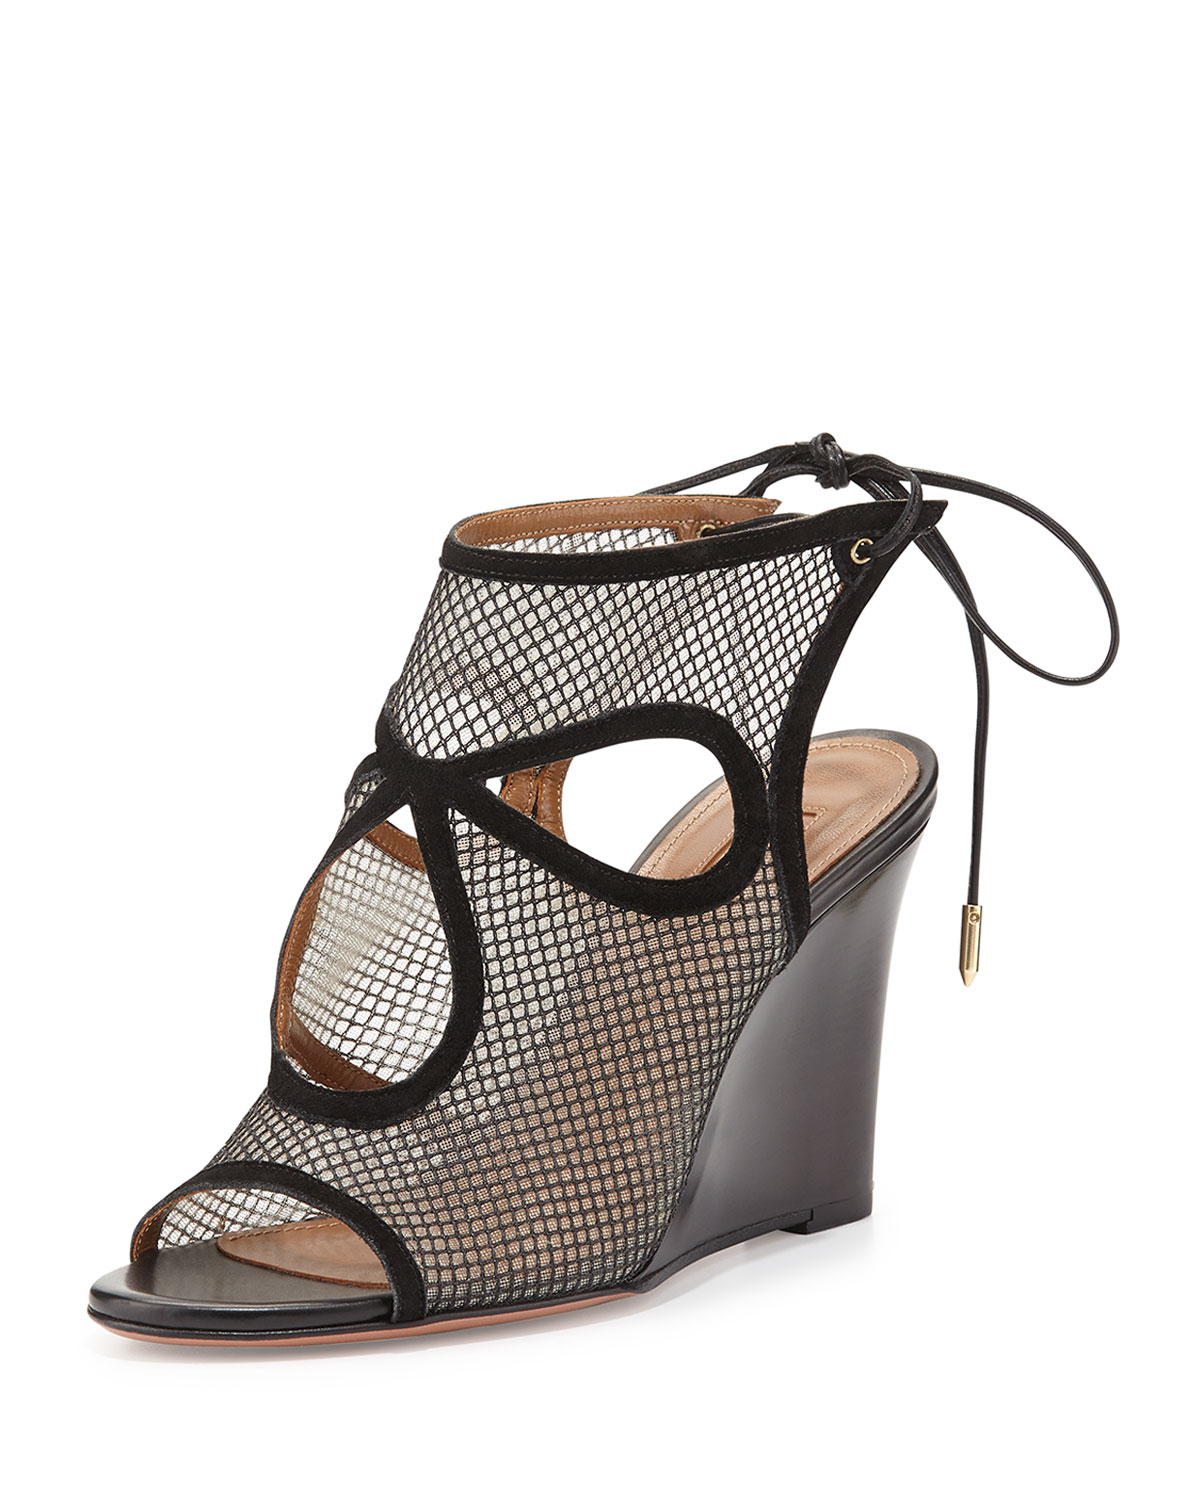 Aquazzura Sexy Thing Mesh Sandals sale limited edition free shipping reliable shipping outlet store online free shipping online get to buy cheap price v8iznOrJ